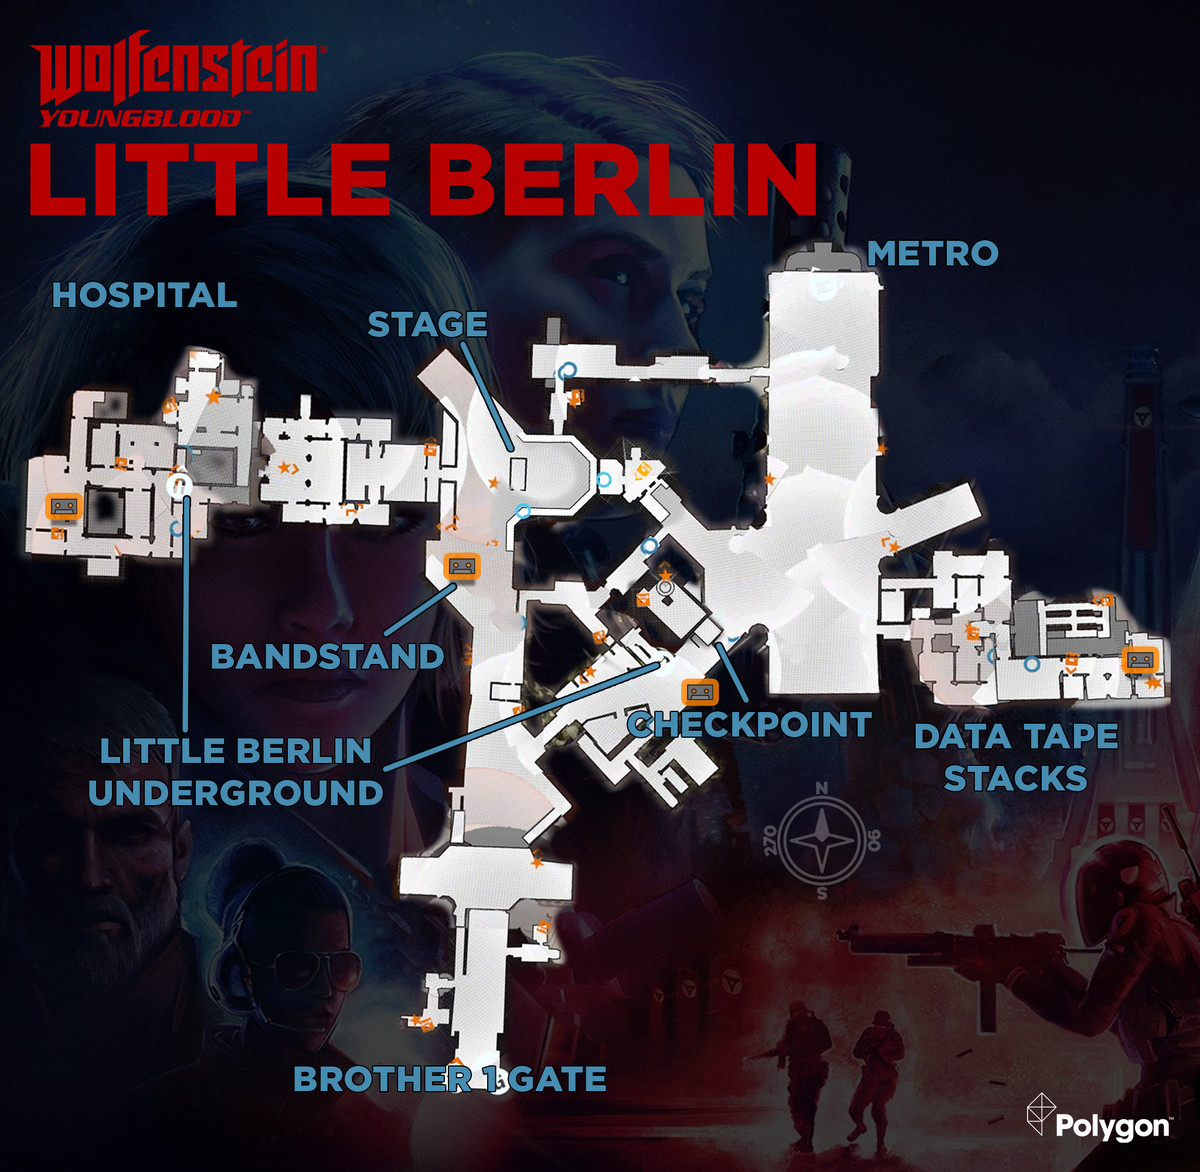 Wolfenstein: Youngblood Little Berlin map with Cassette Tape locations